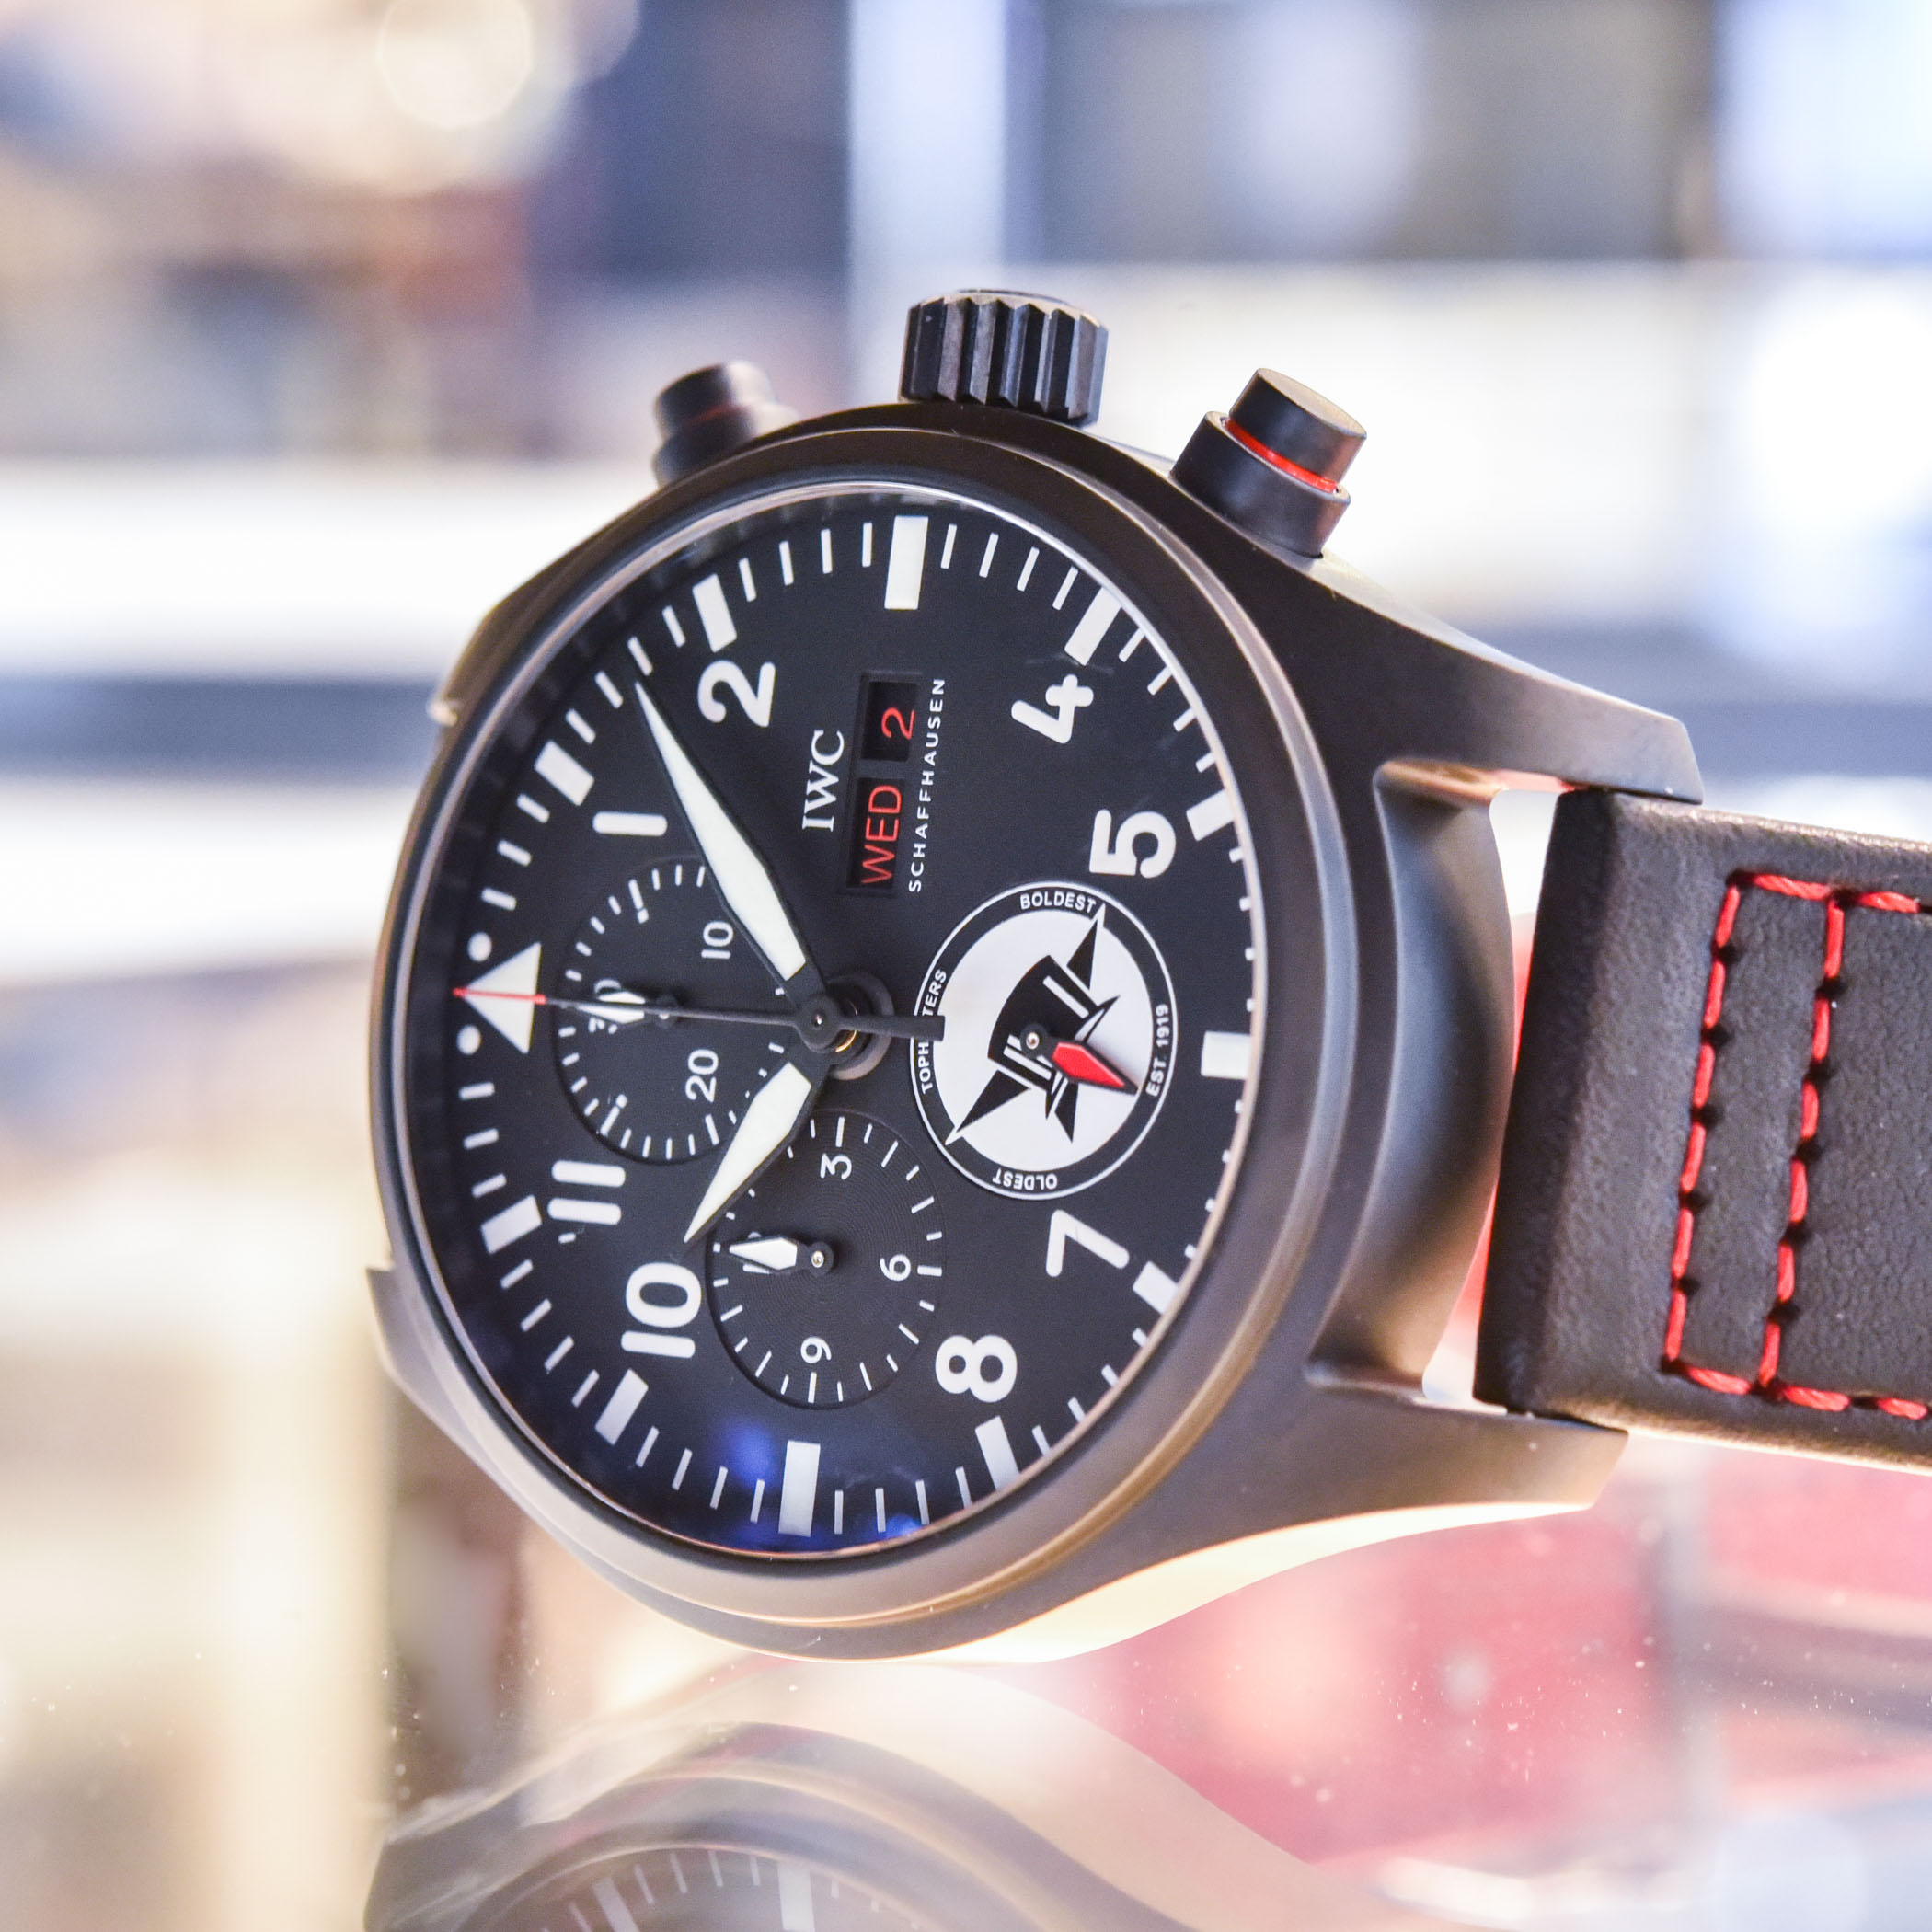 IWC Pilot's Watch Chronograph US Navy Squadrons Editions Tophatters IW389108